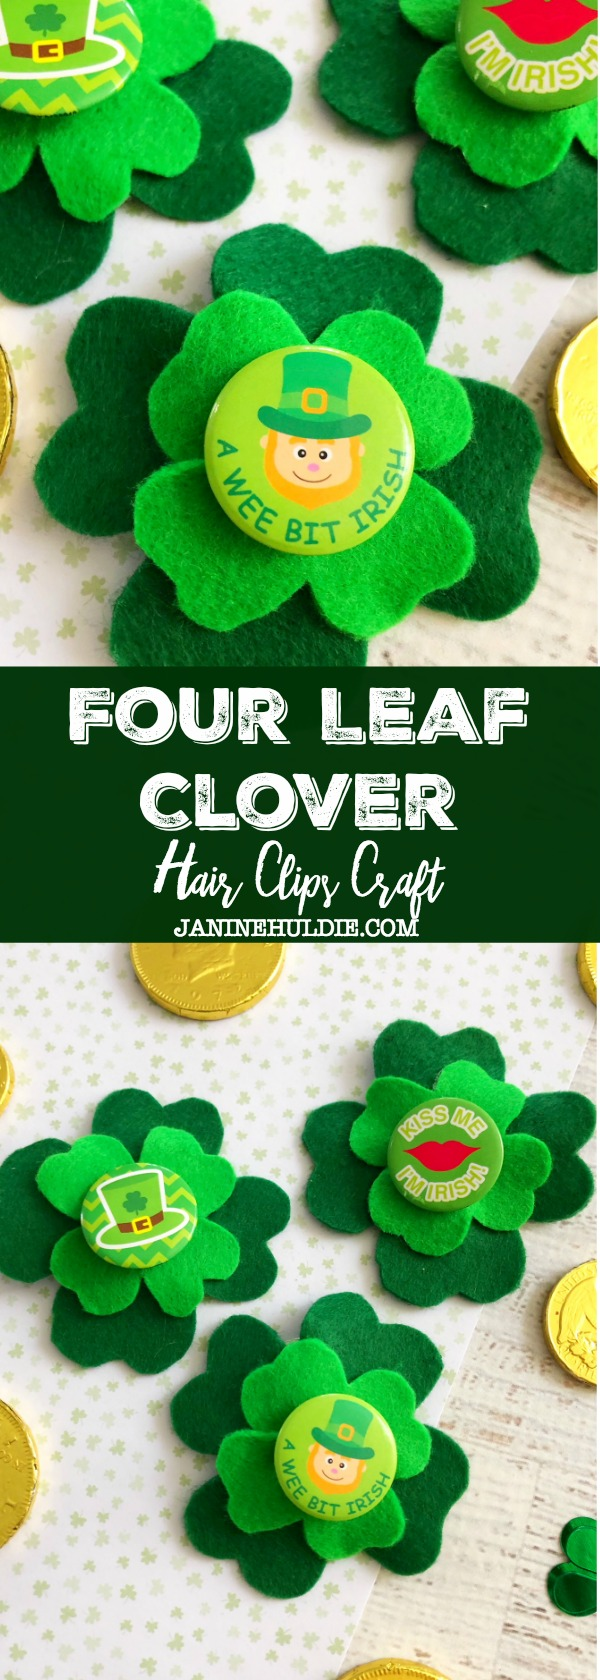 Four Leaf Clover, This Mom's Confessions